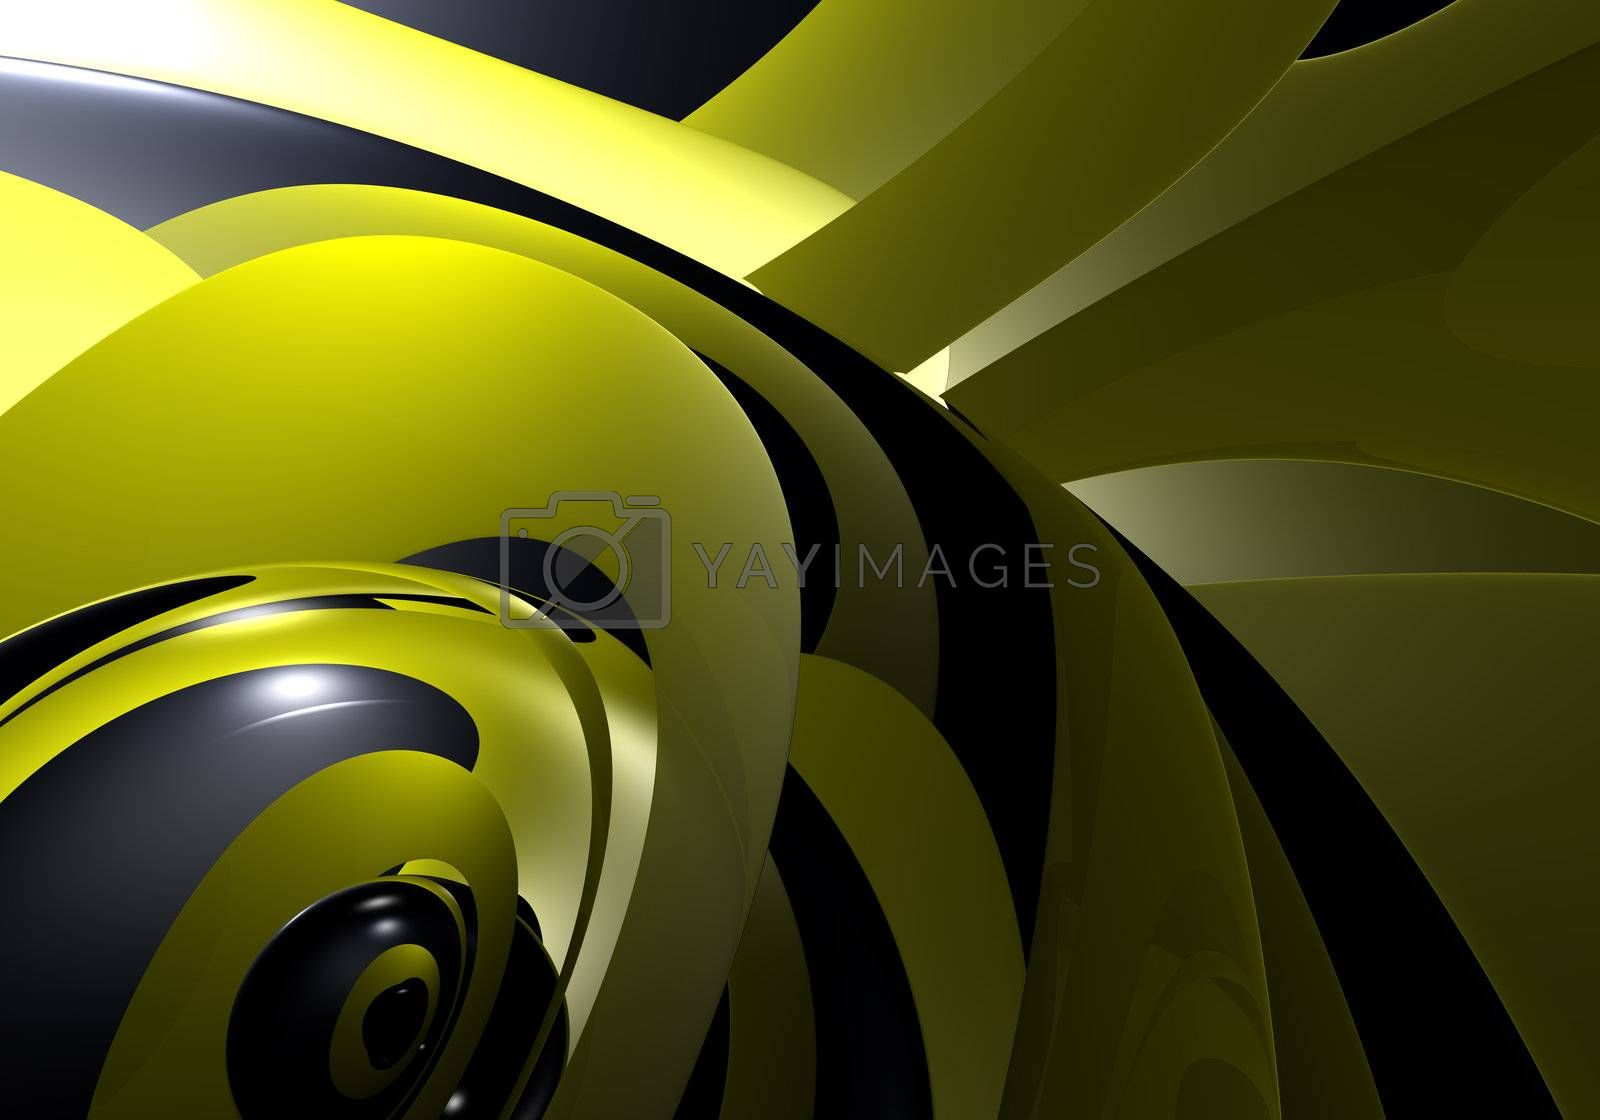 Abstract Background Design by Trusty